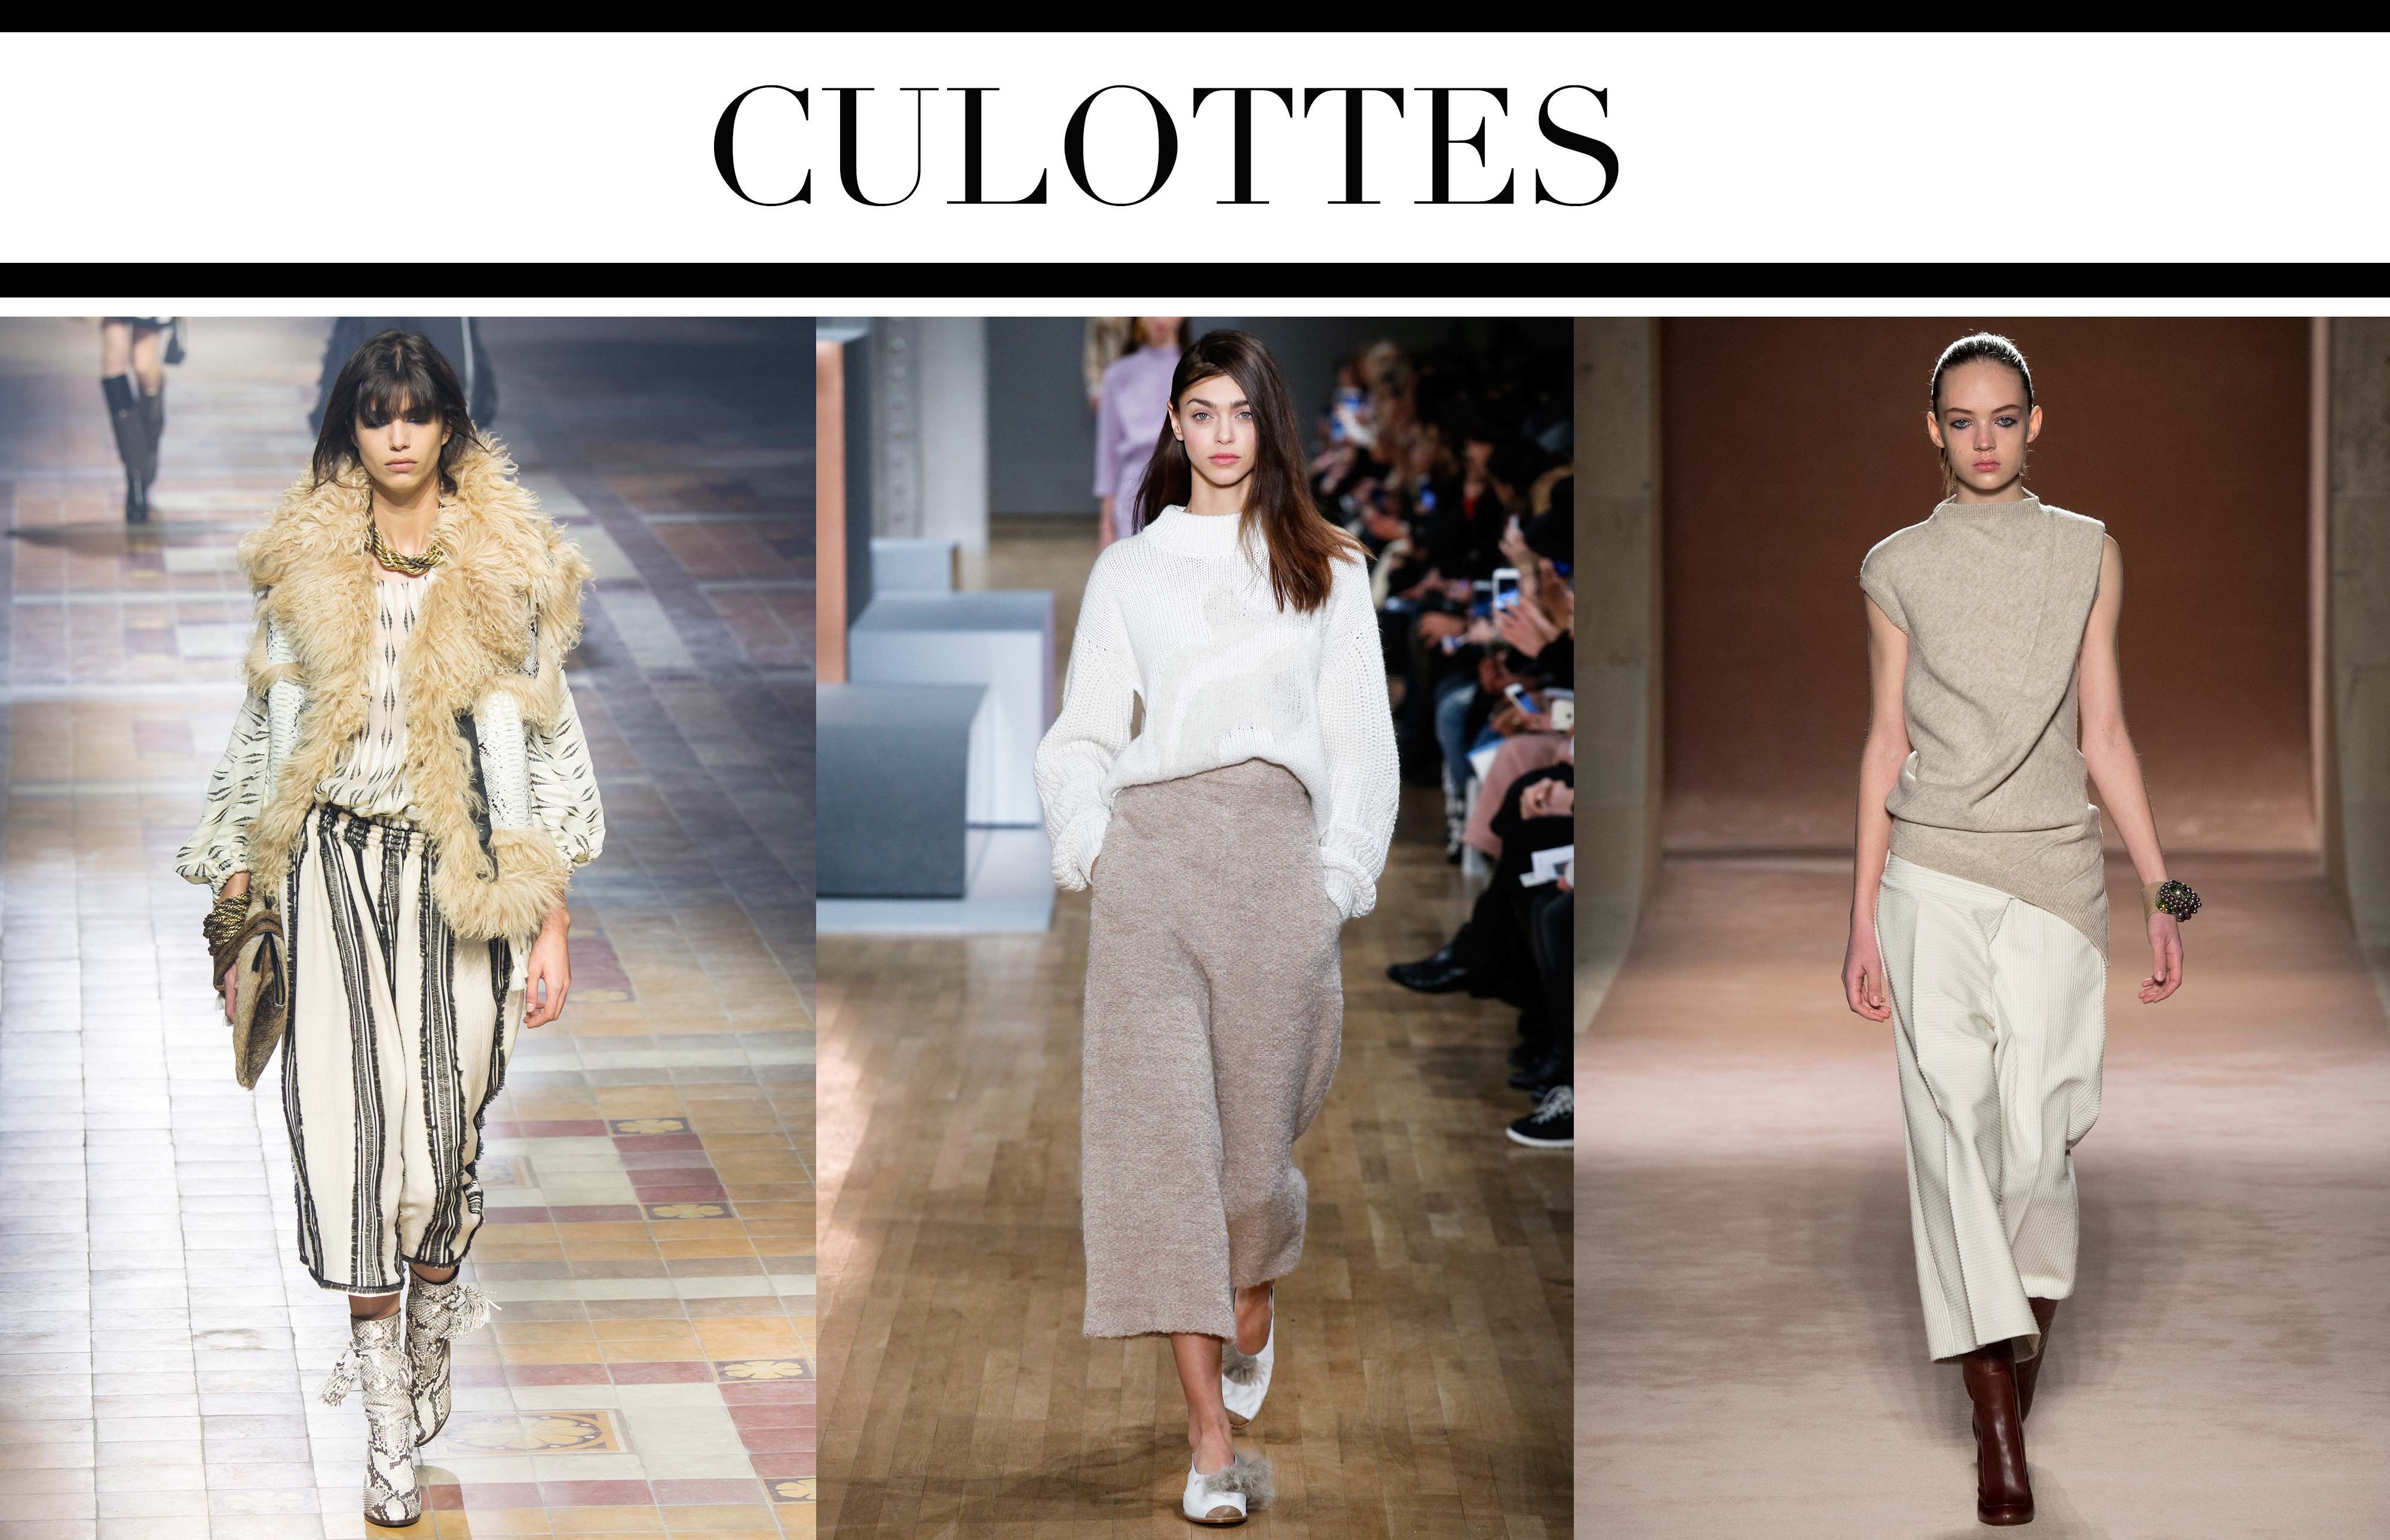 FWculottes